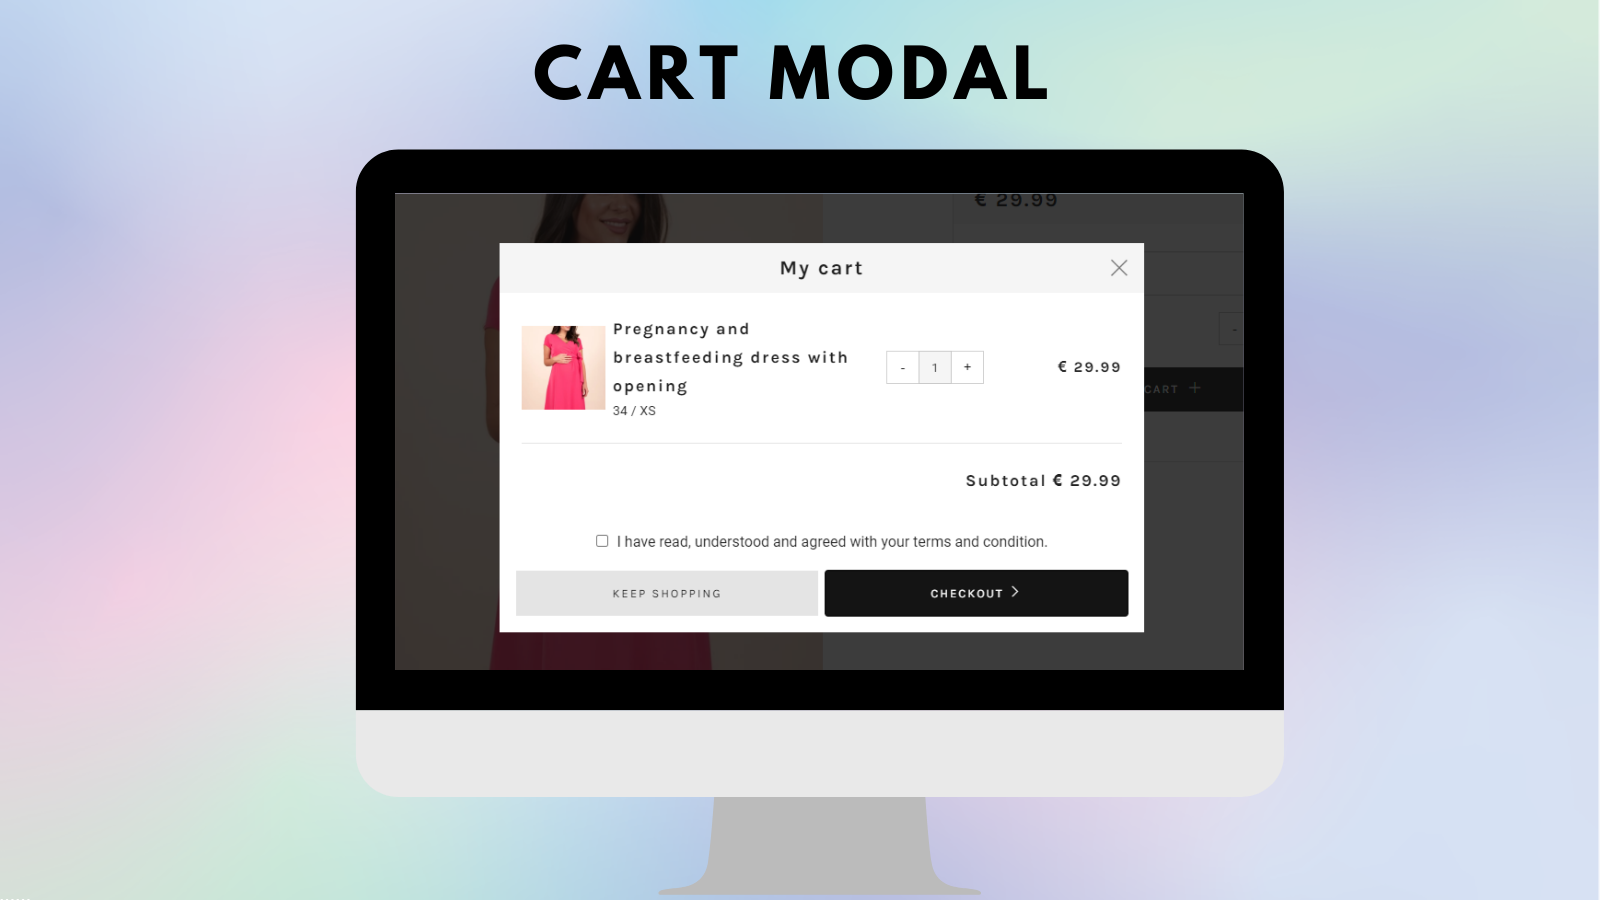 I agree to terms checkbox on the cart modal - Tech Dignity